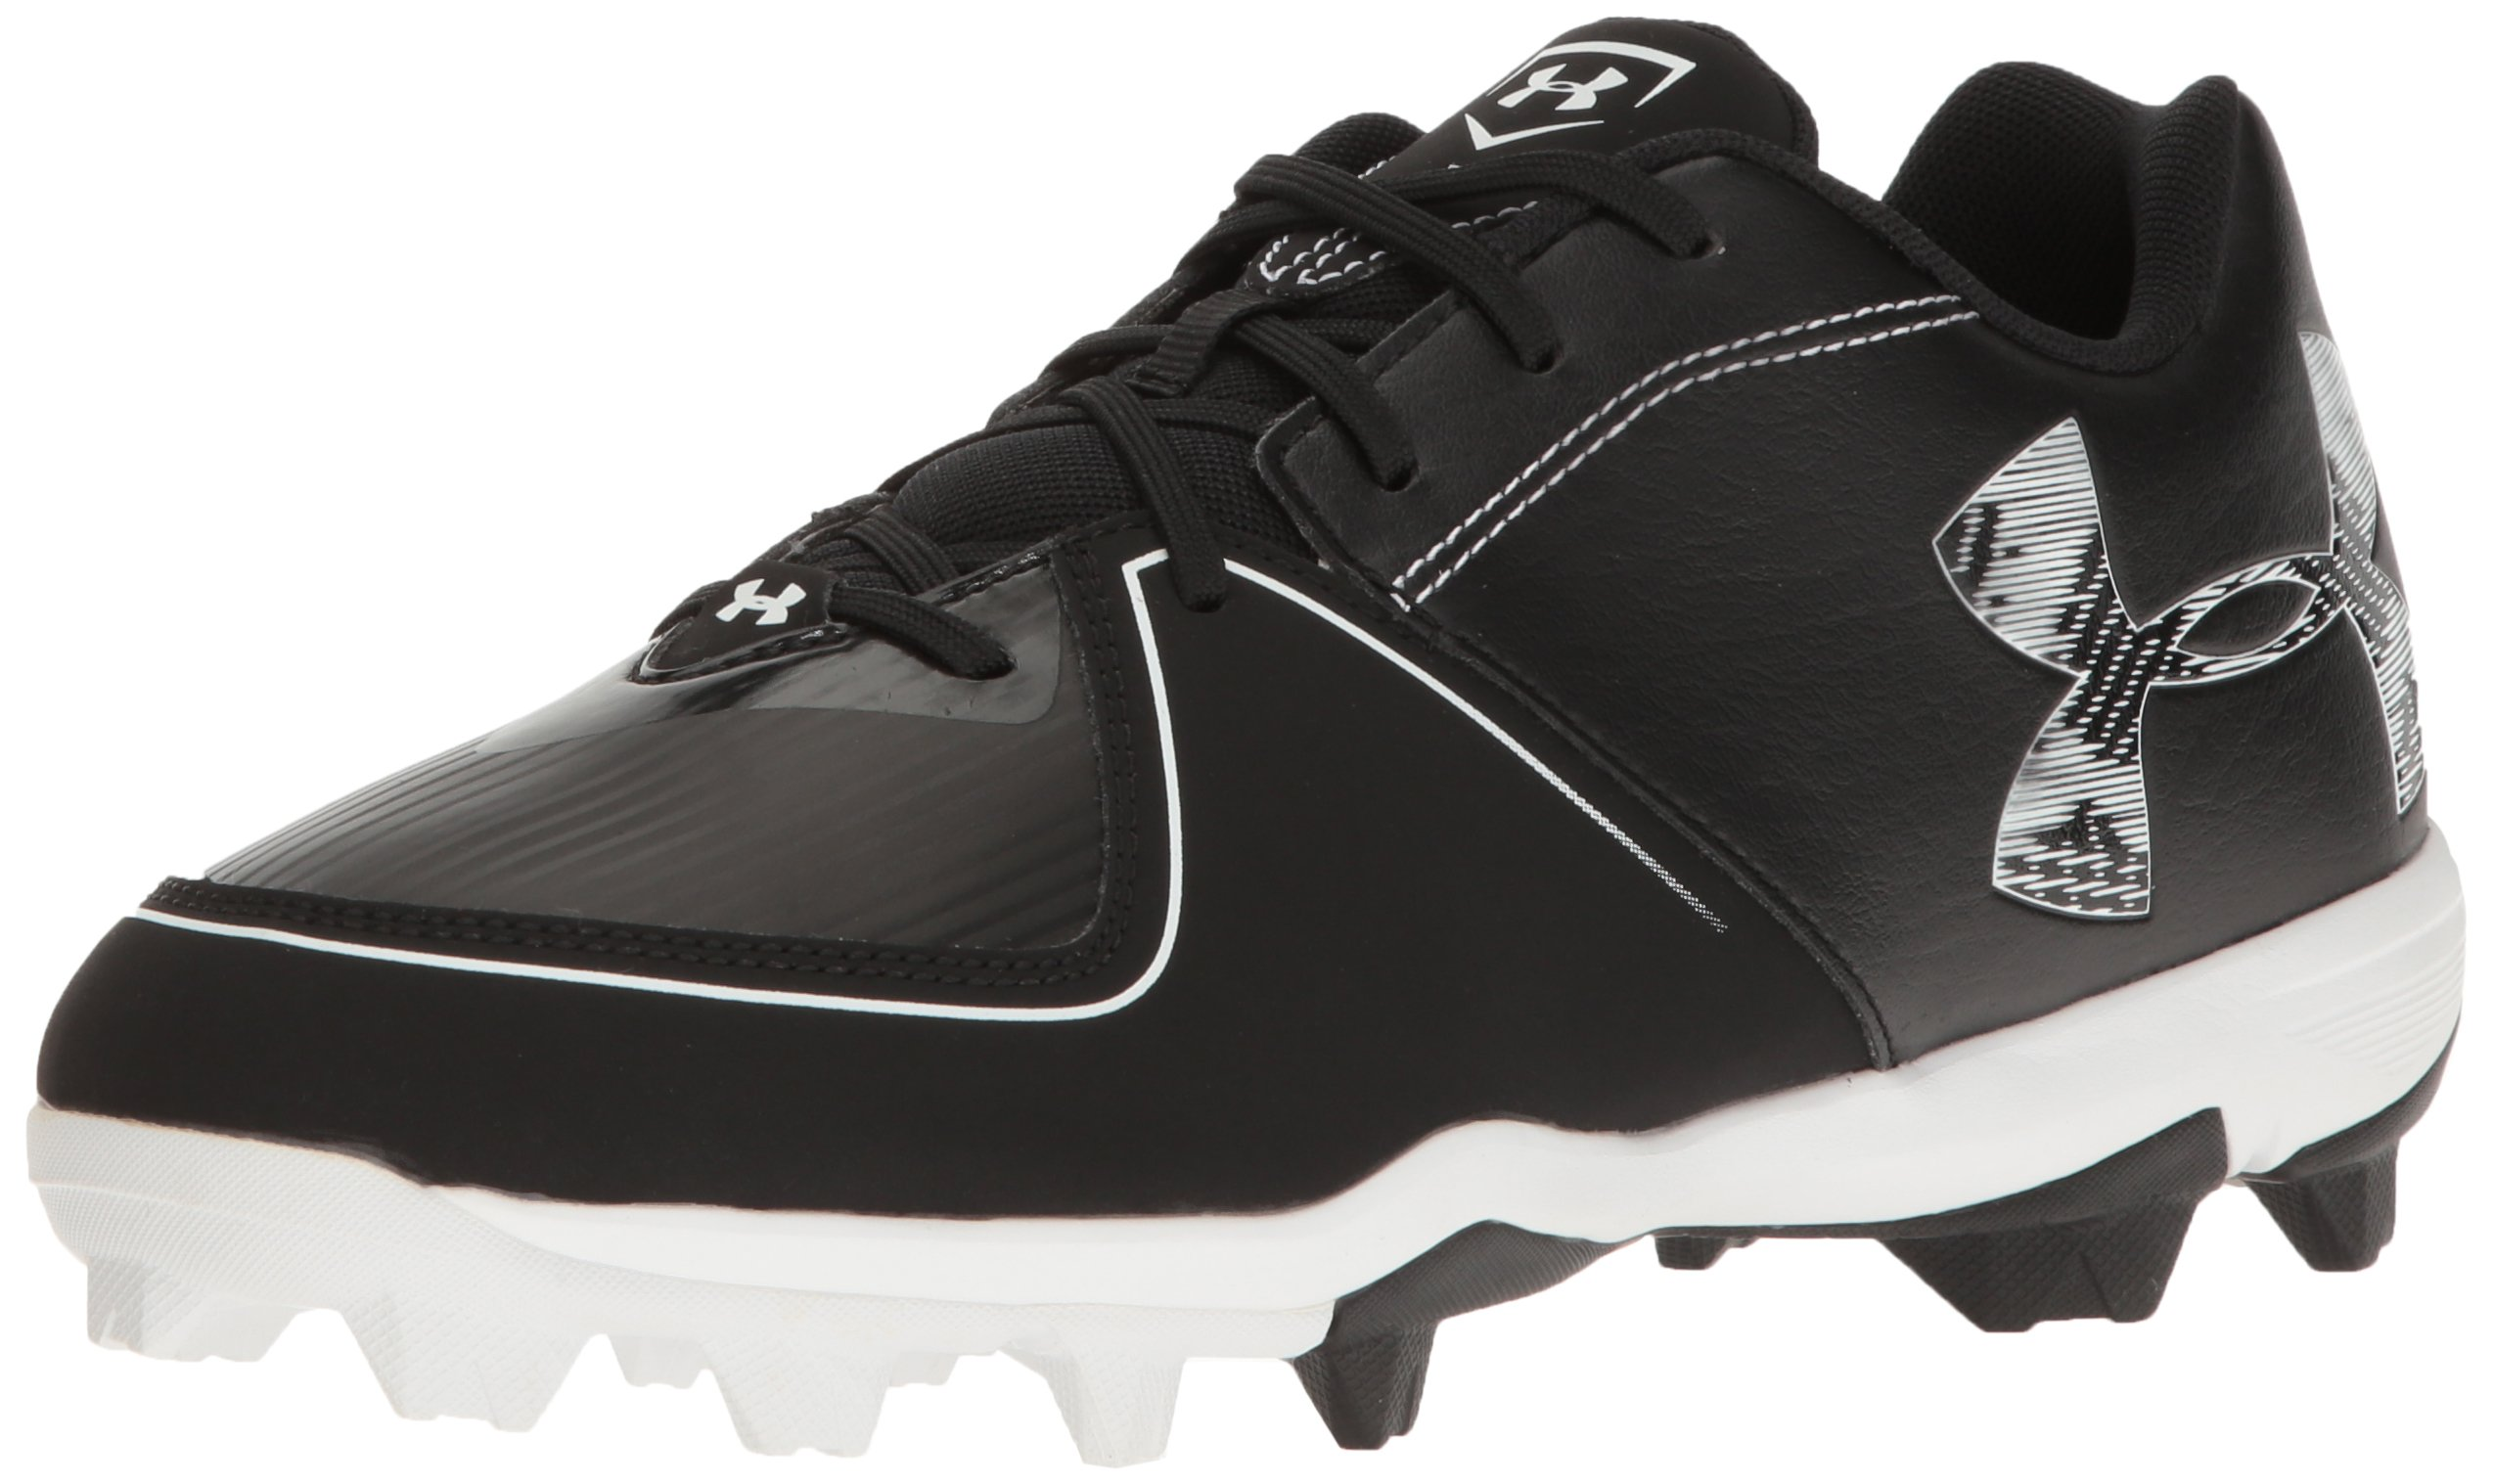 Under Armour Men's Glyde RM Softball Shoe, 001/Black, 9.5 by Under Armour